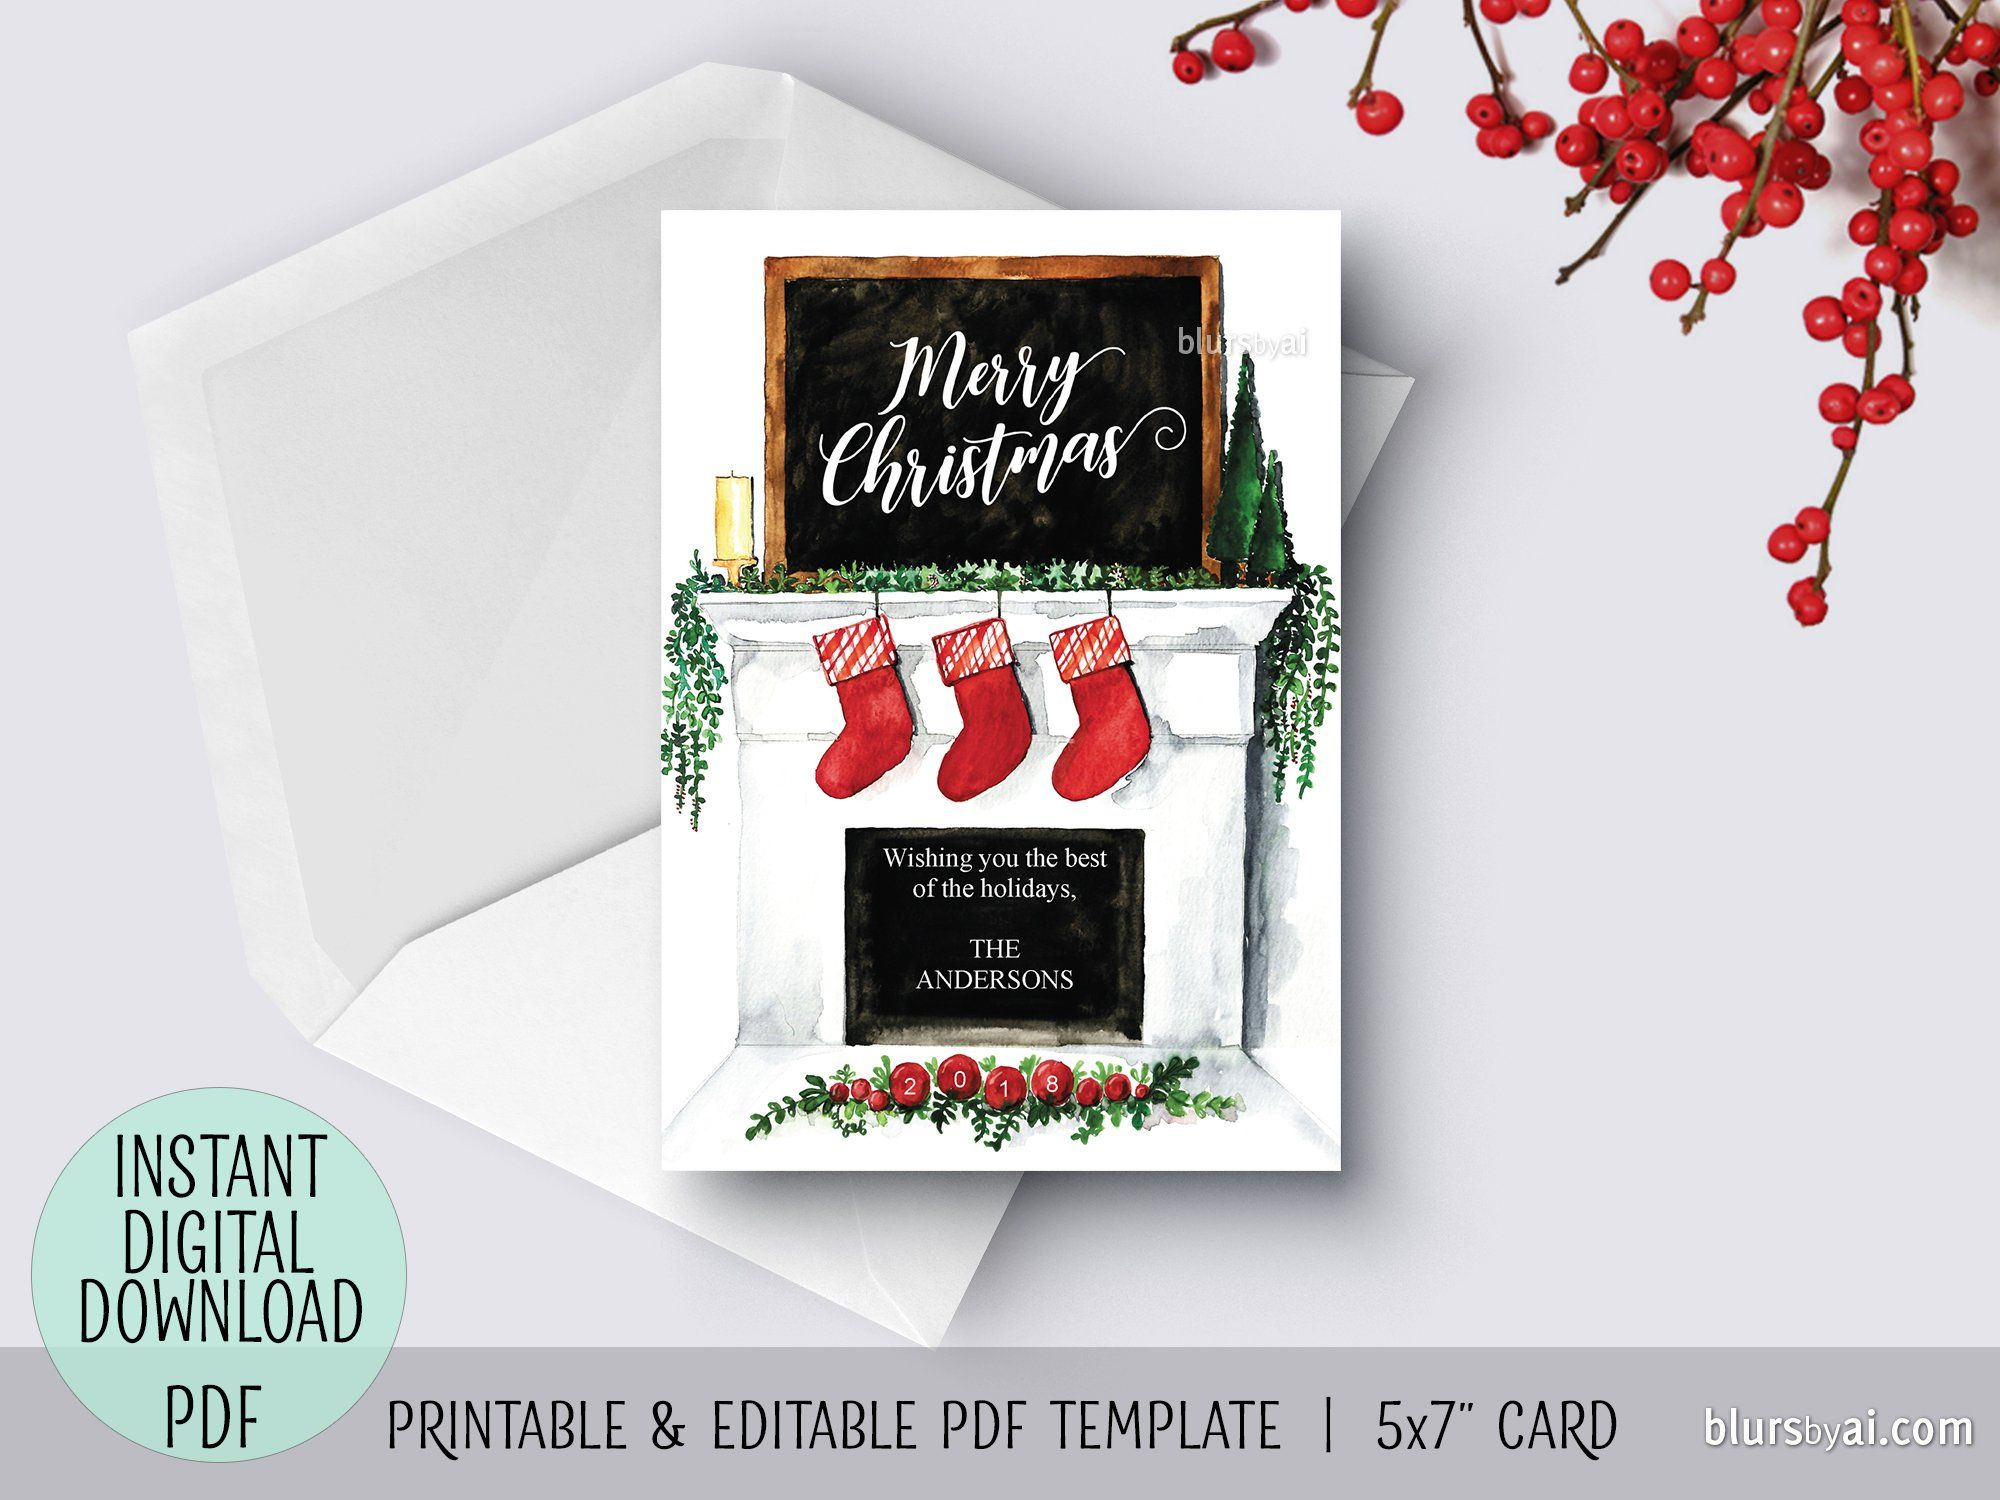 Editable Pdf Christmas Card Template Watercolor Fireplace Mantel Printable And Customizable Christmas Ca Christmas Card Template Christmas Cards Card Template